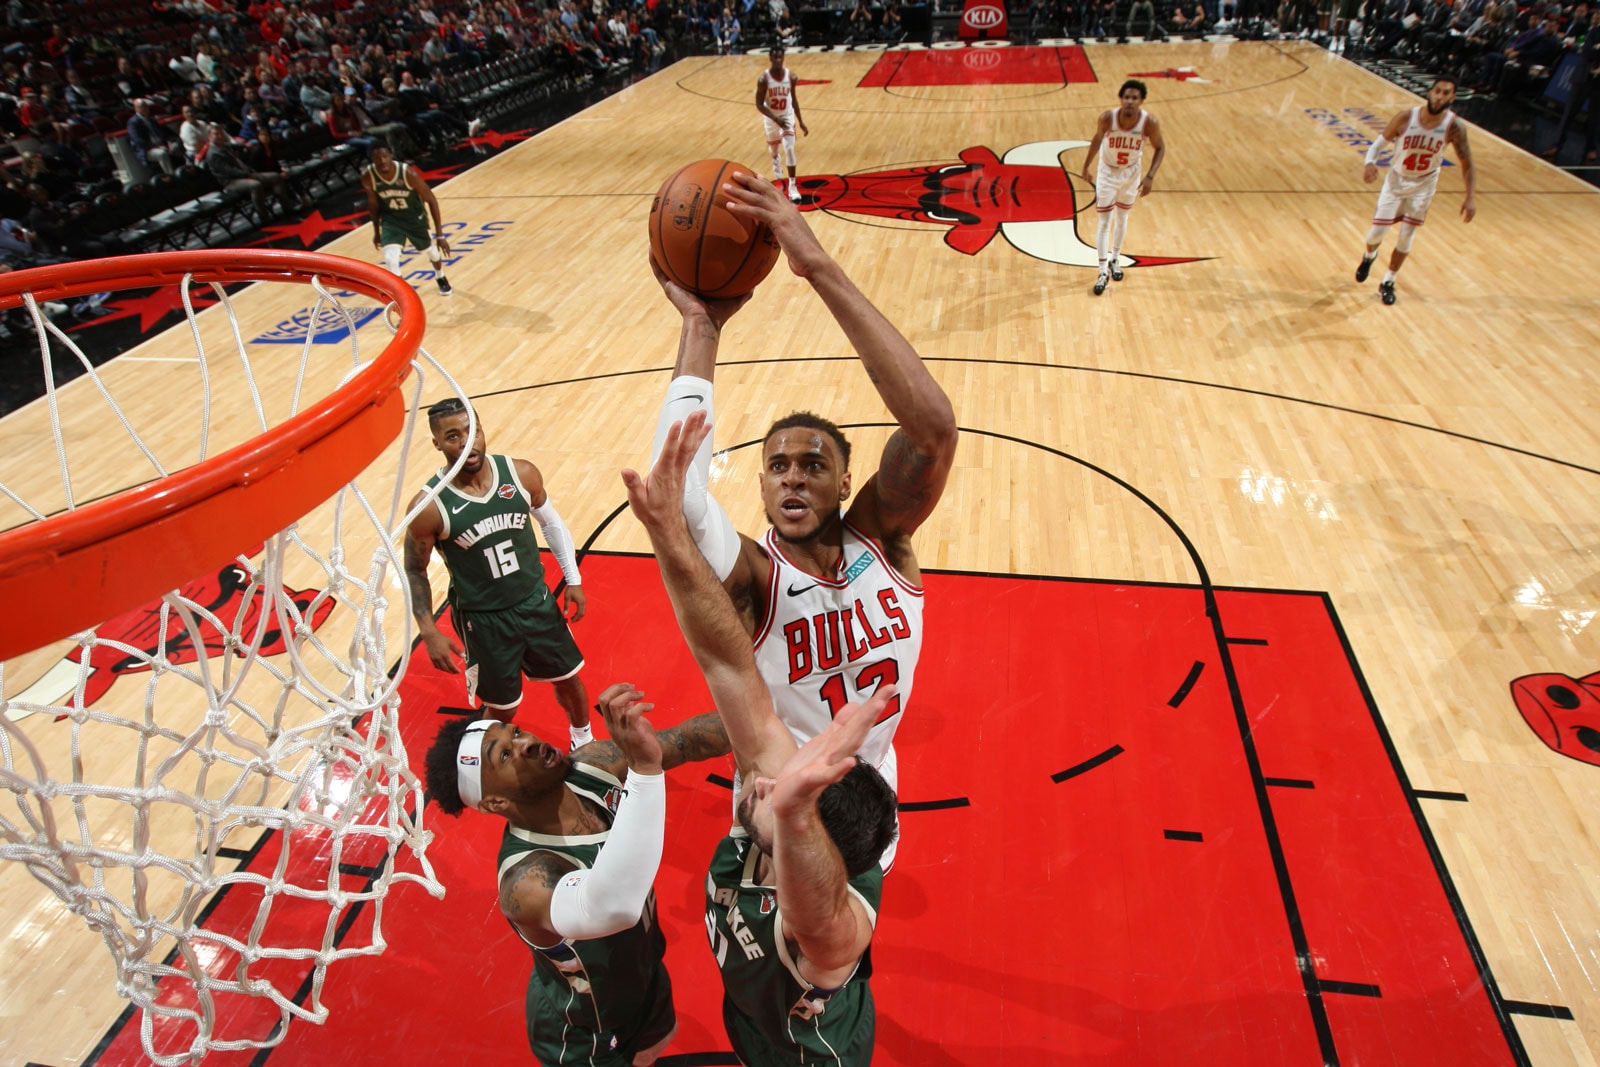 Daniel Gafford #12 of Chicago Bulls shoots the ball against the Milwaukee Bucks on October 7, 2019 at the United Center in Chicago, Illinois.